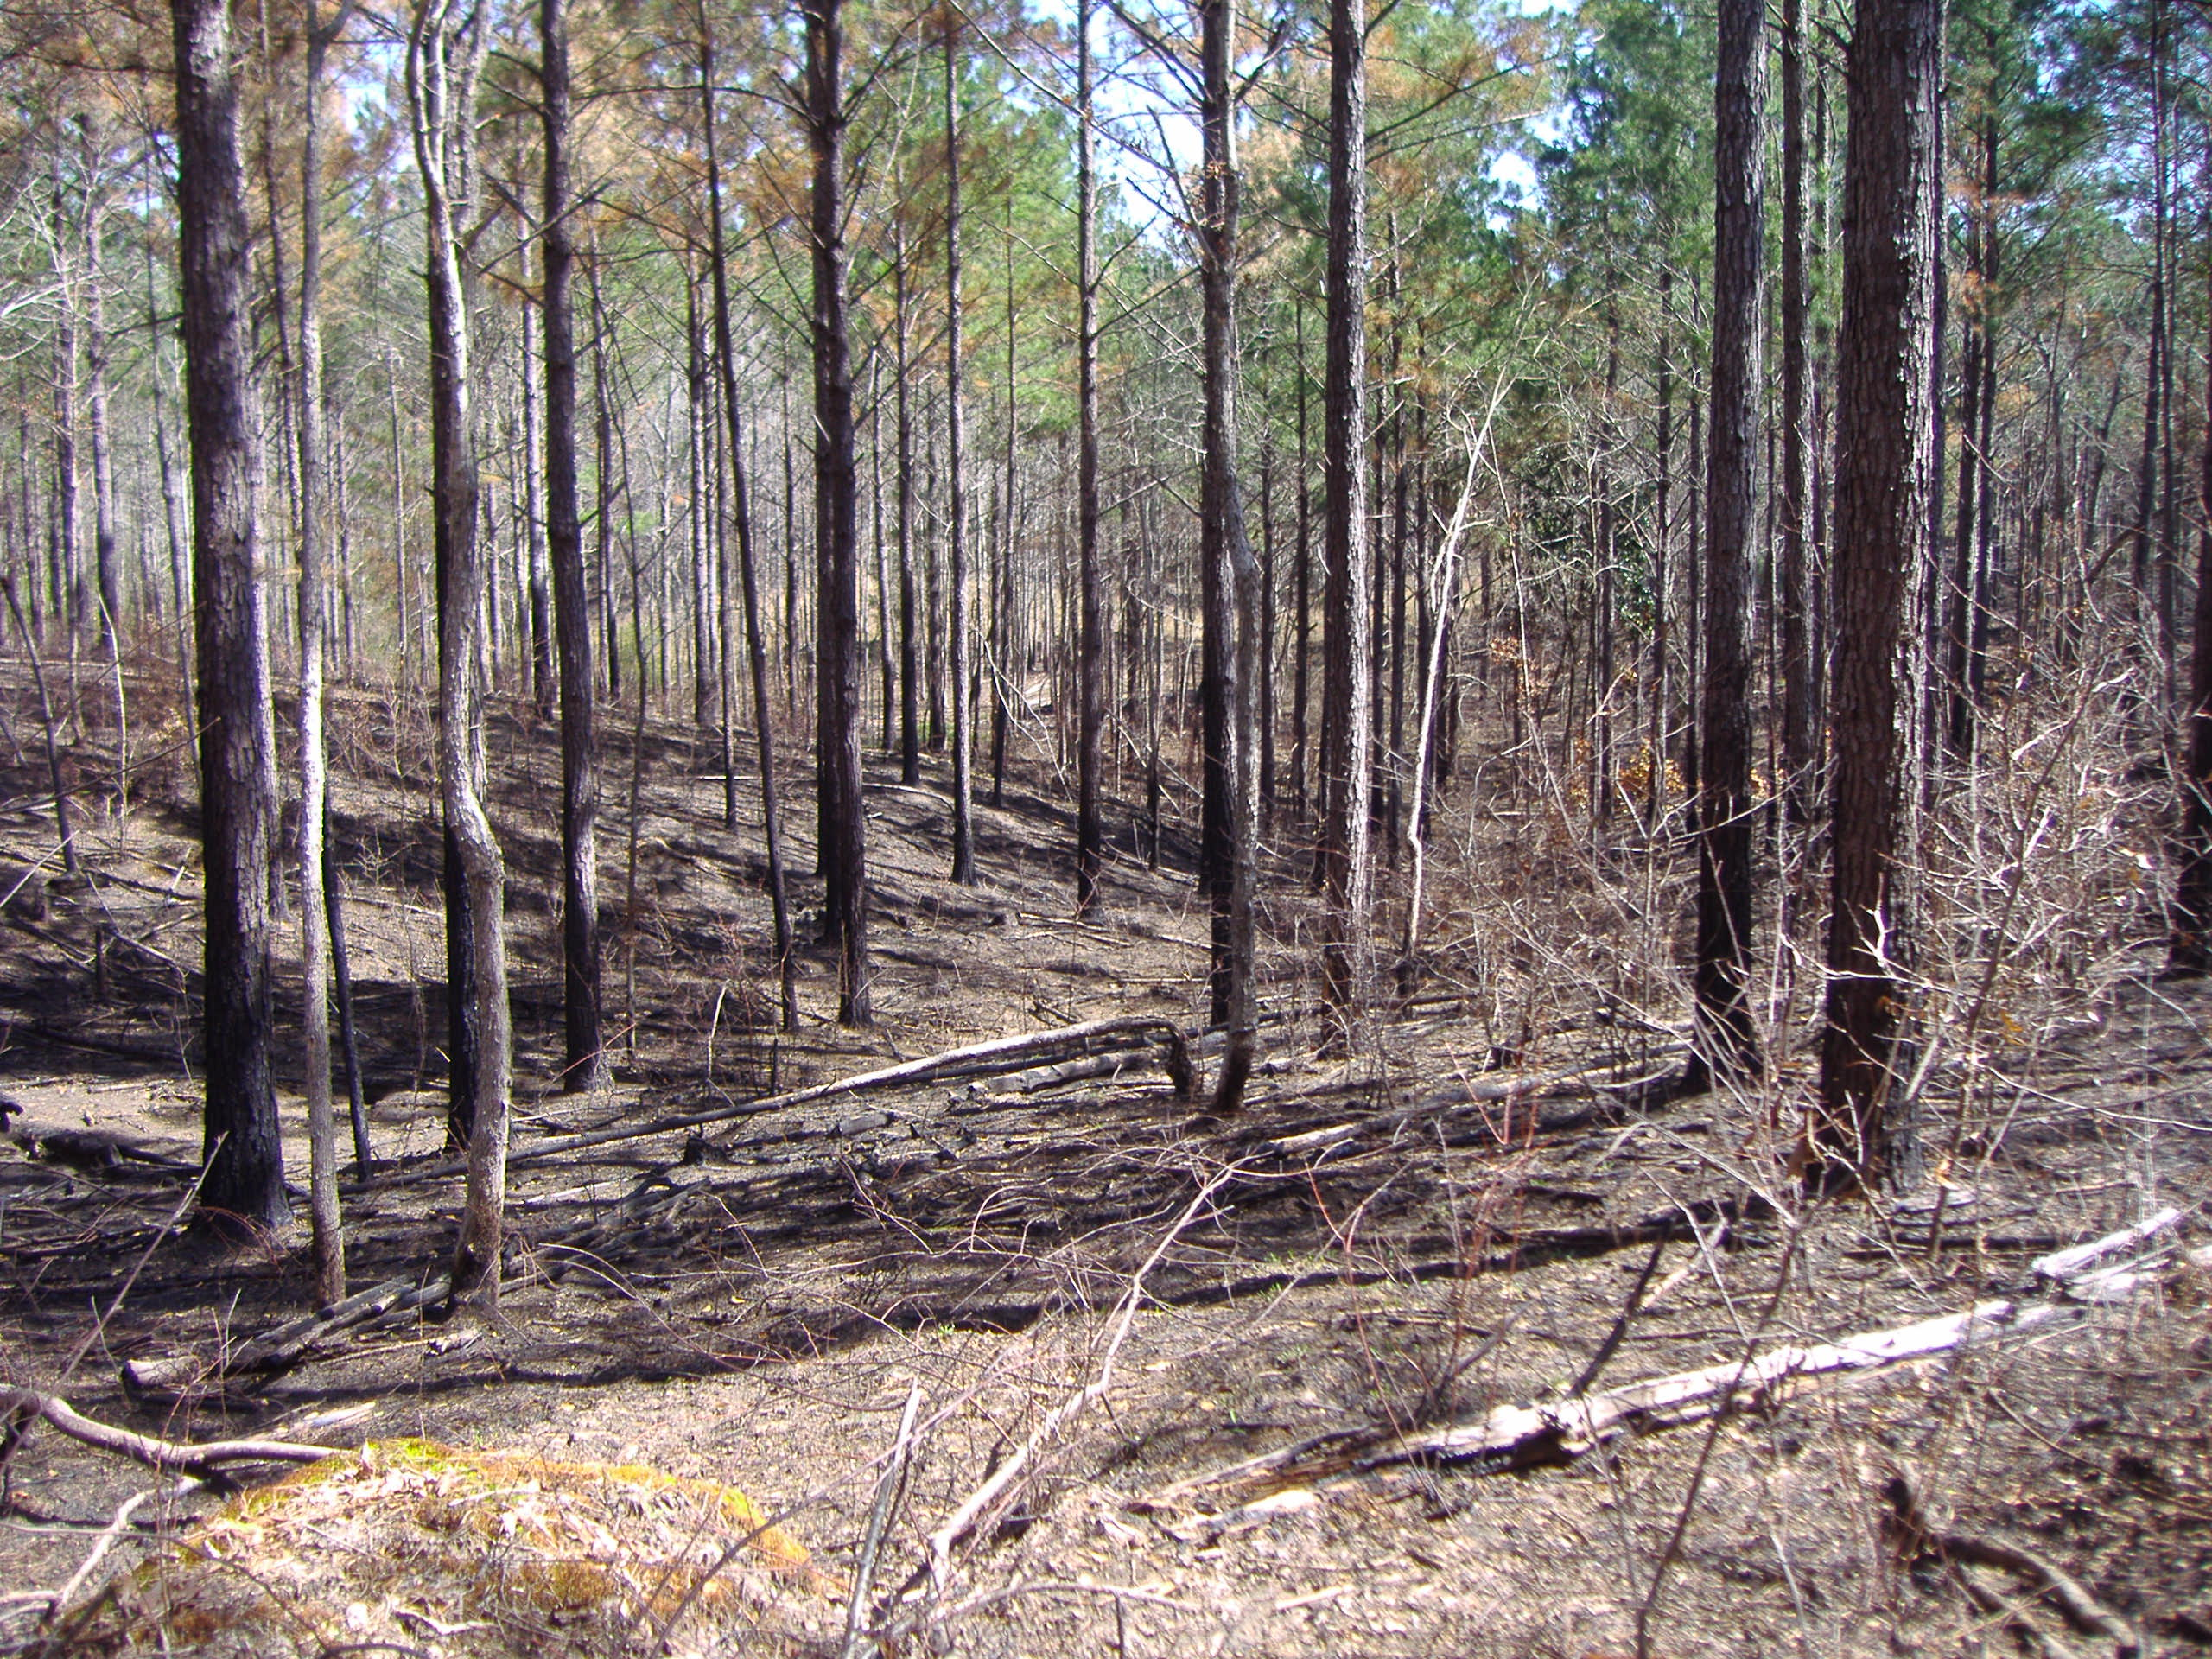 Stand of pine trees after prescribed burning was conducted.